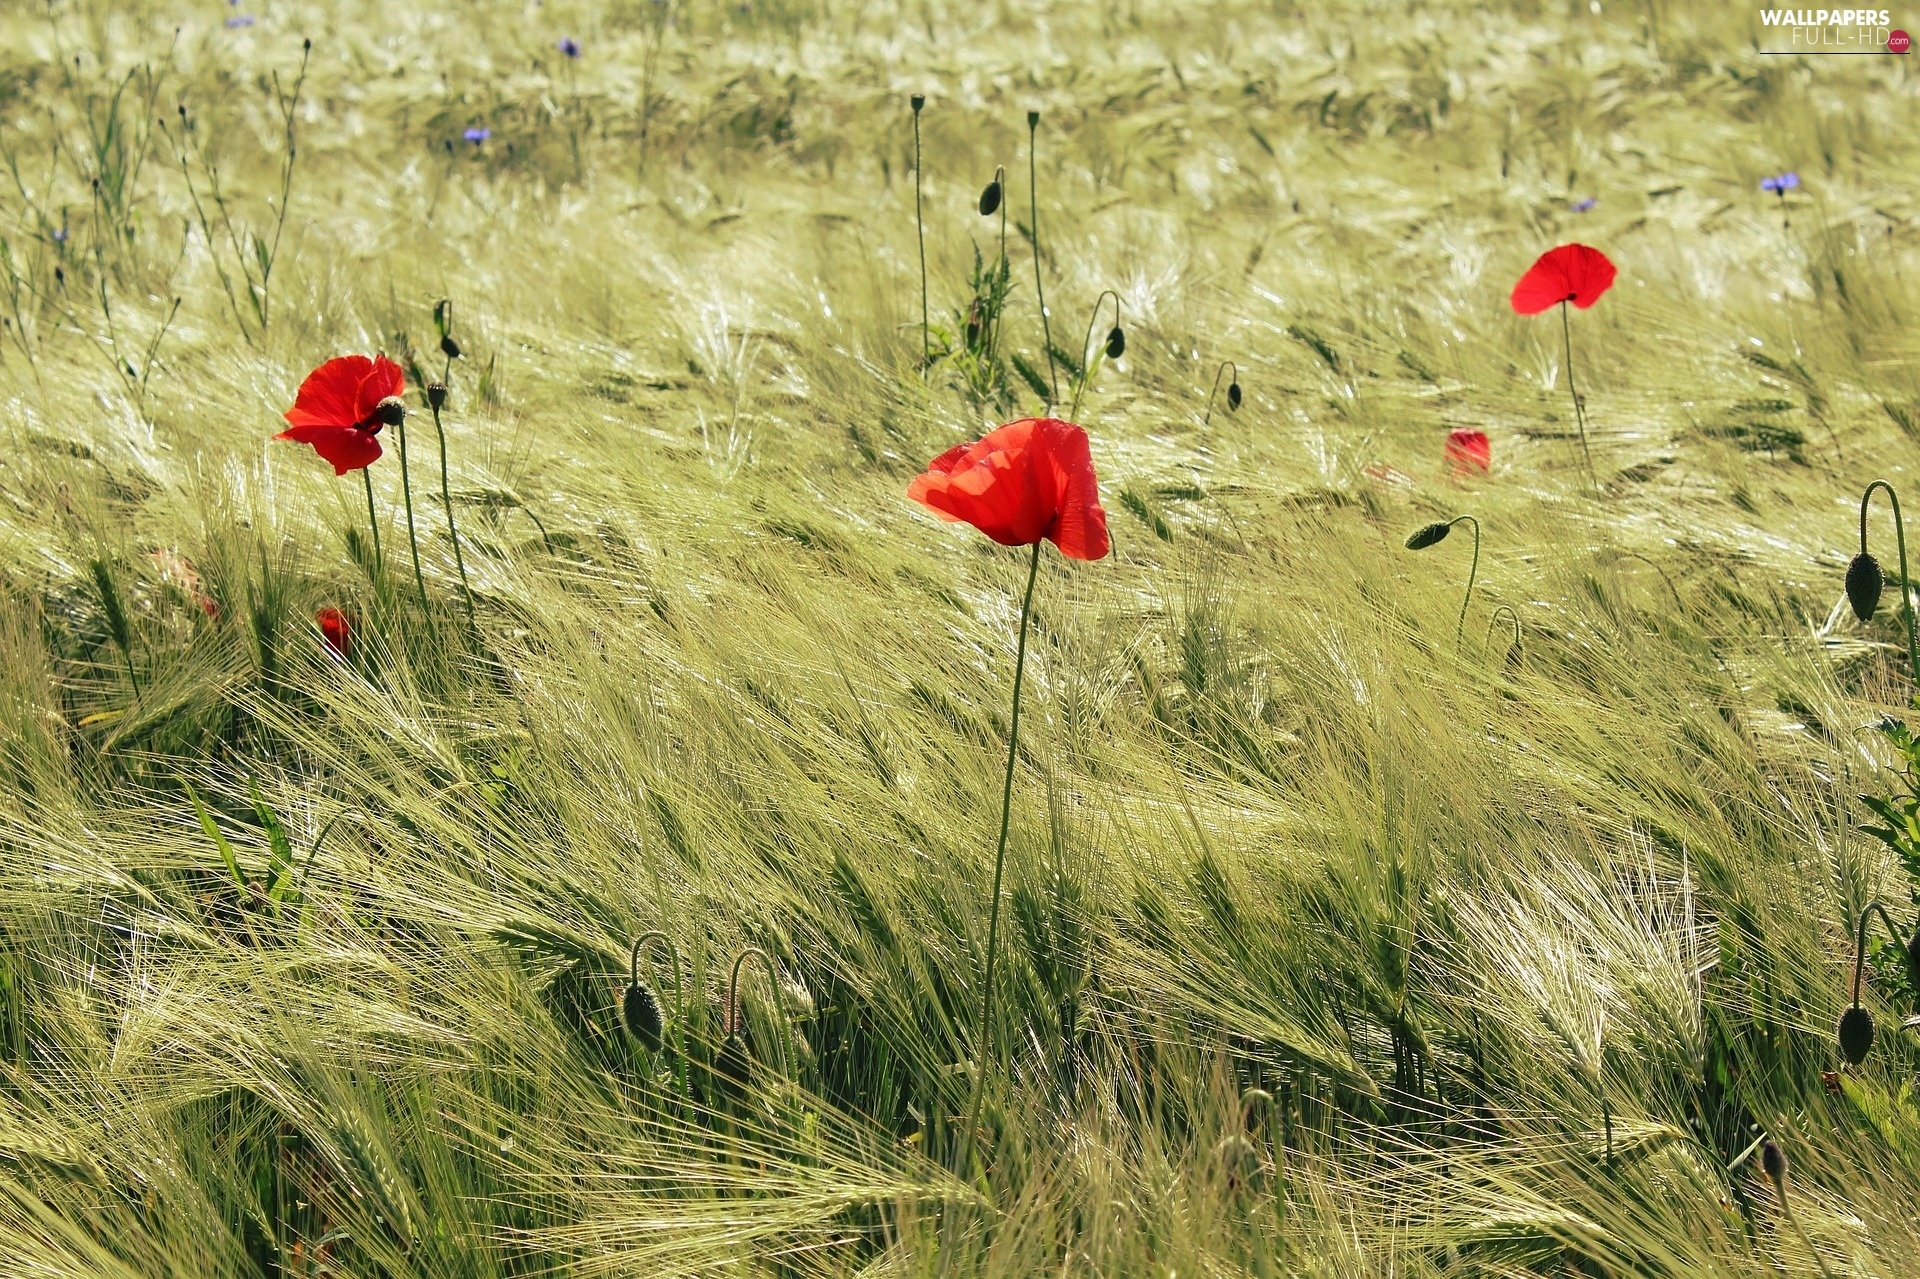 papavers, Red, Field, summer, cereals